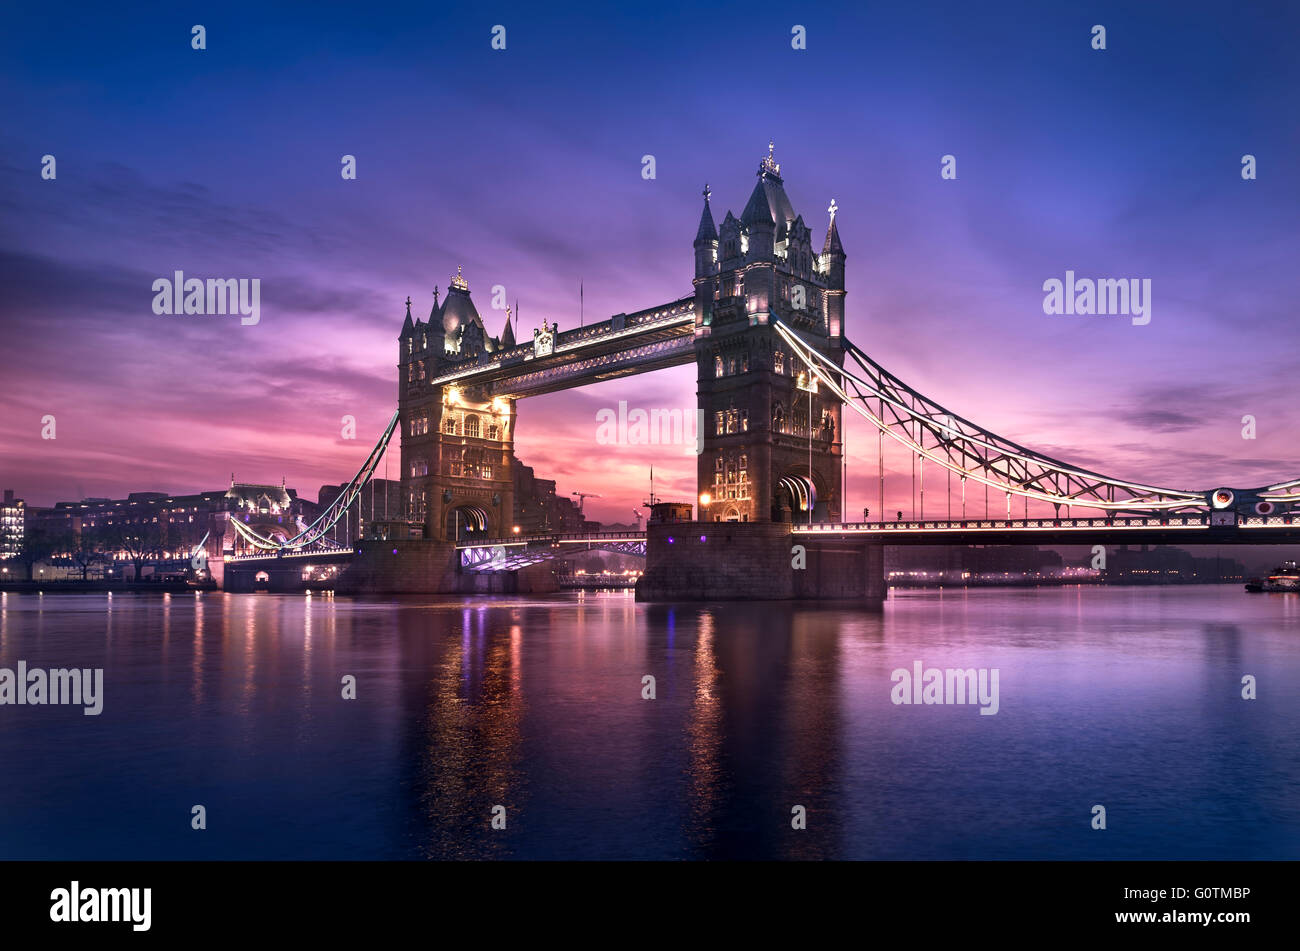 Famous Tower Bridge in the morning, London, England Stock Photo